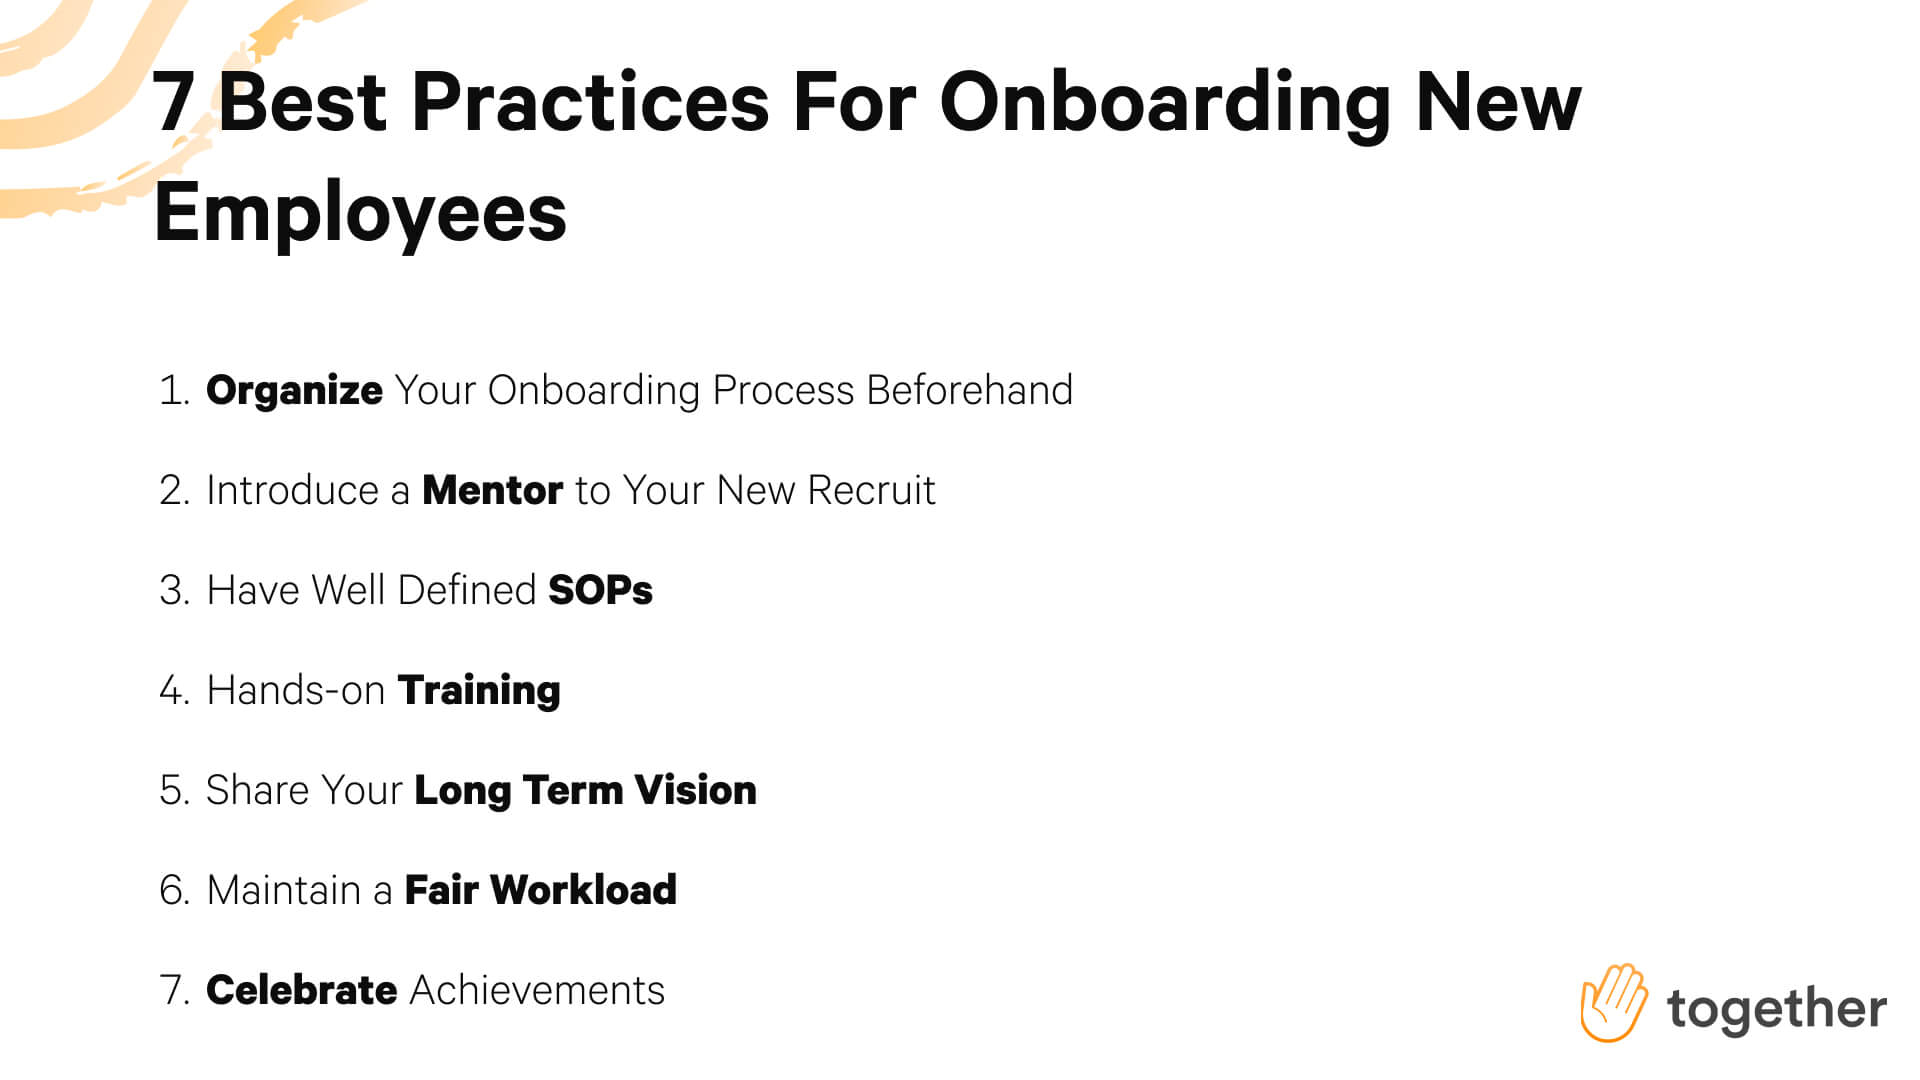 7 Best Practices for Onboarding New Employees